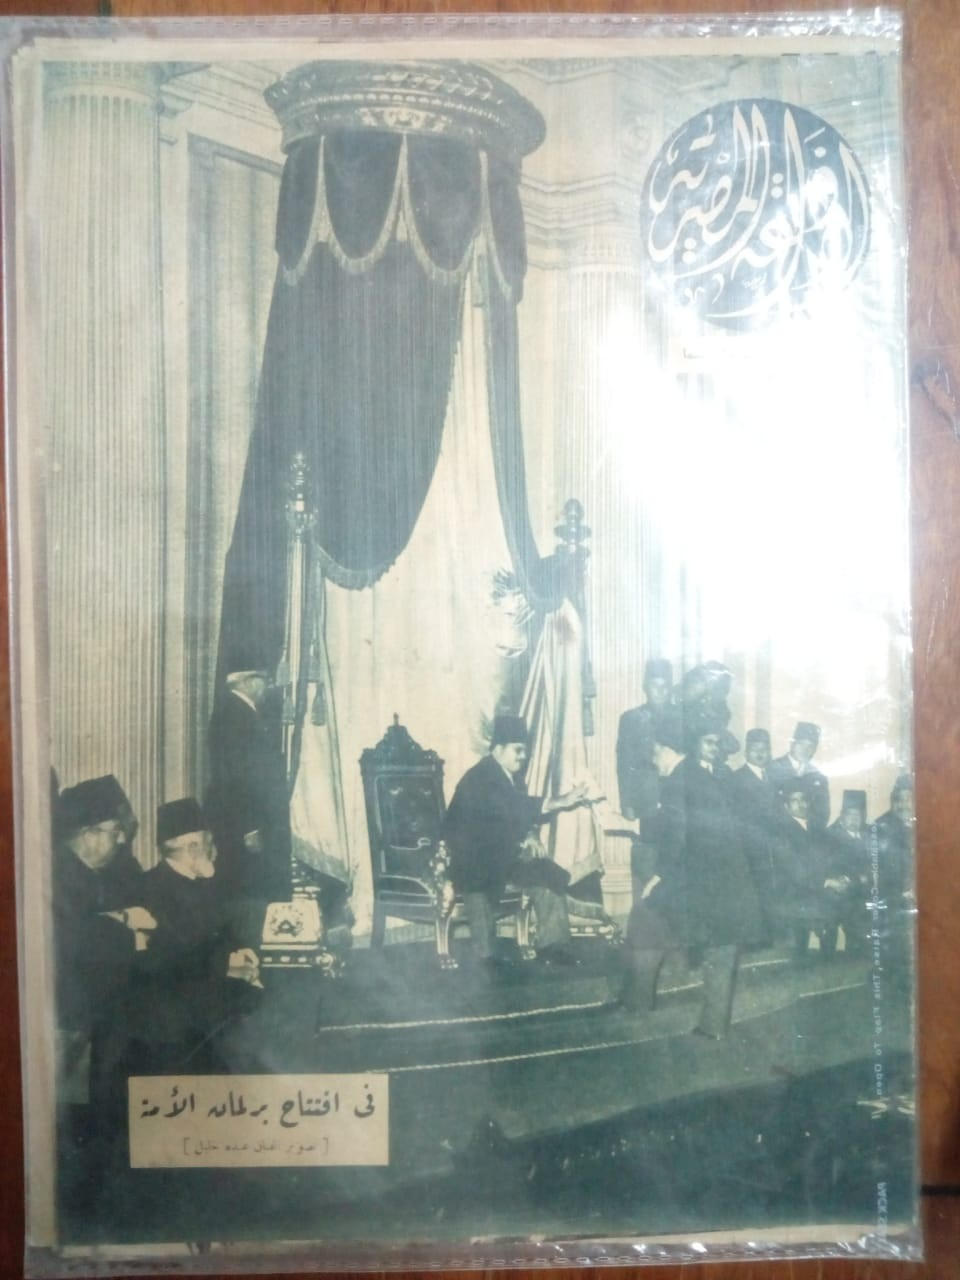 Egyptian Radio - The opening of the National Assembly